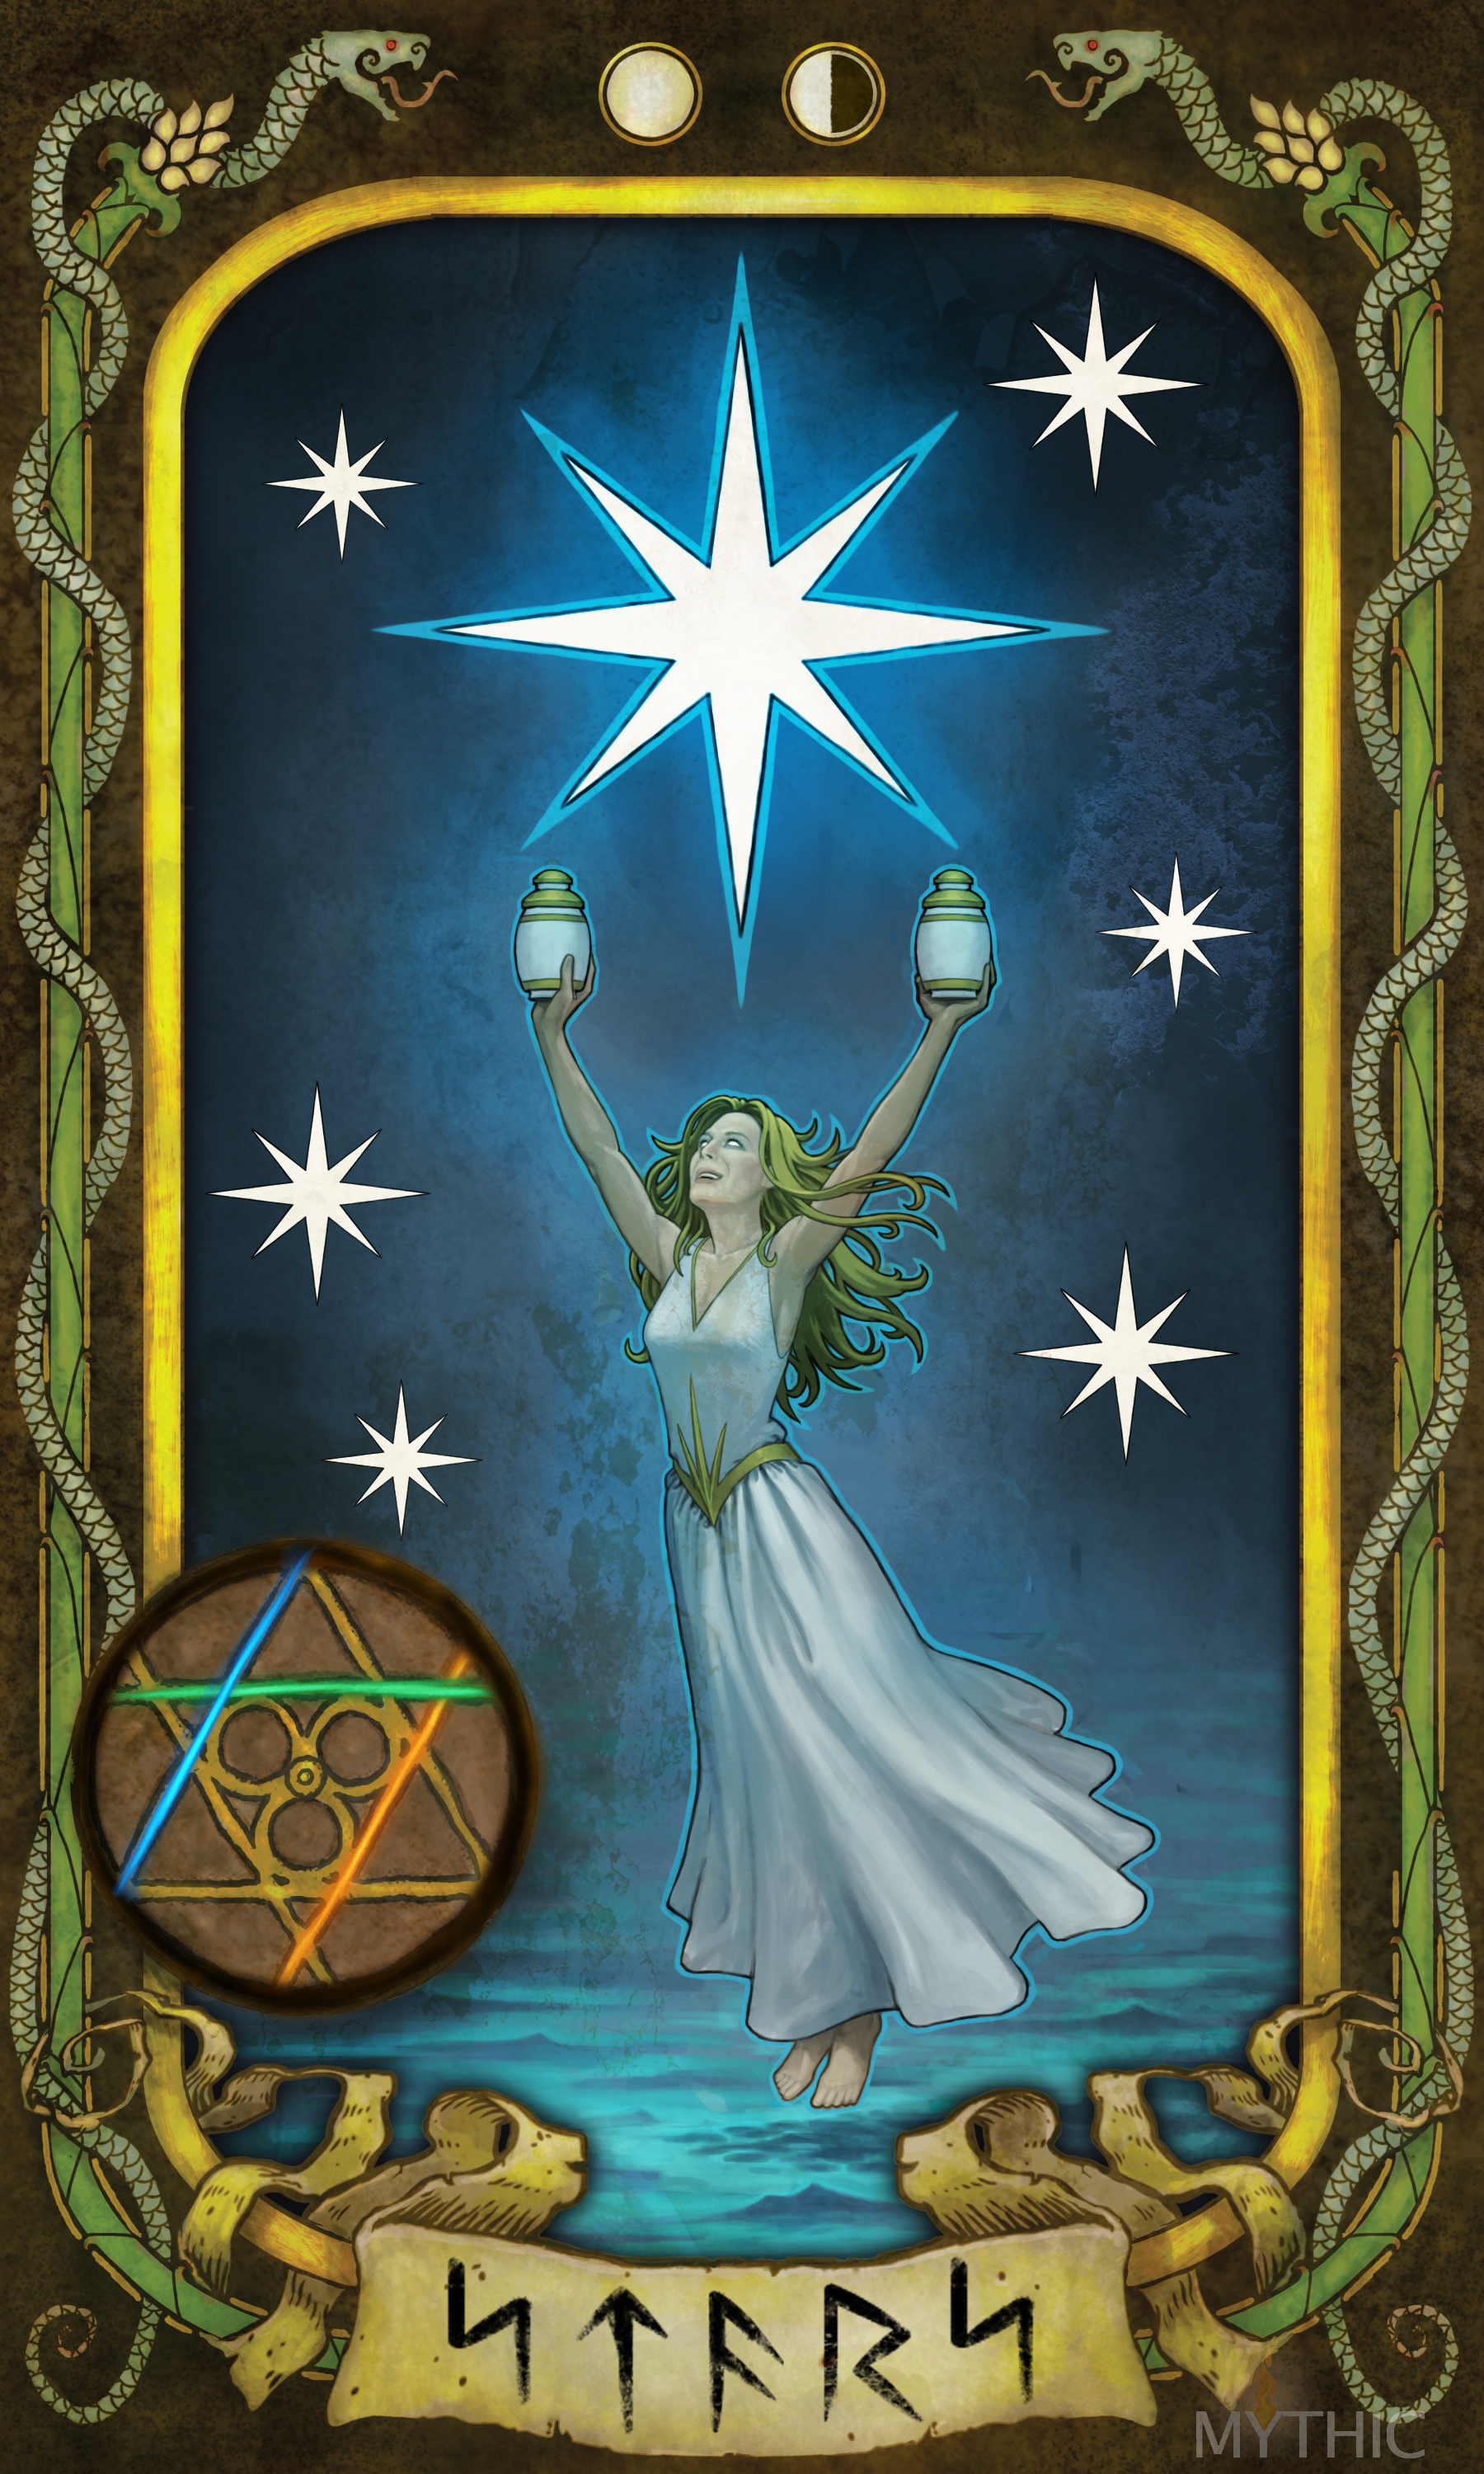 Major Arcana Tarot Card Meaning According To: Ultima Forever: Quest For The Avatar